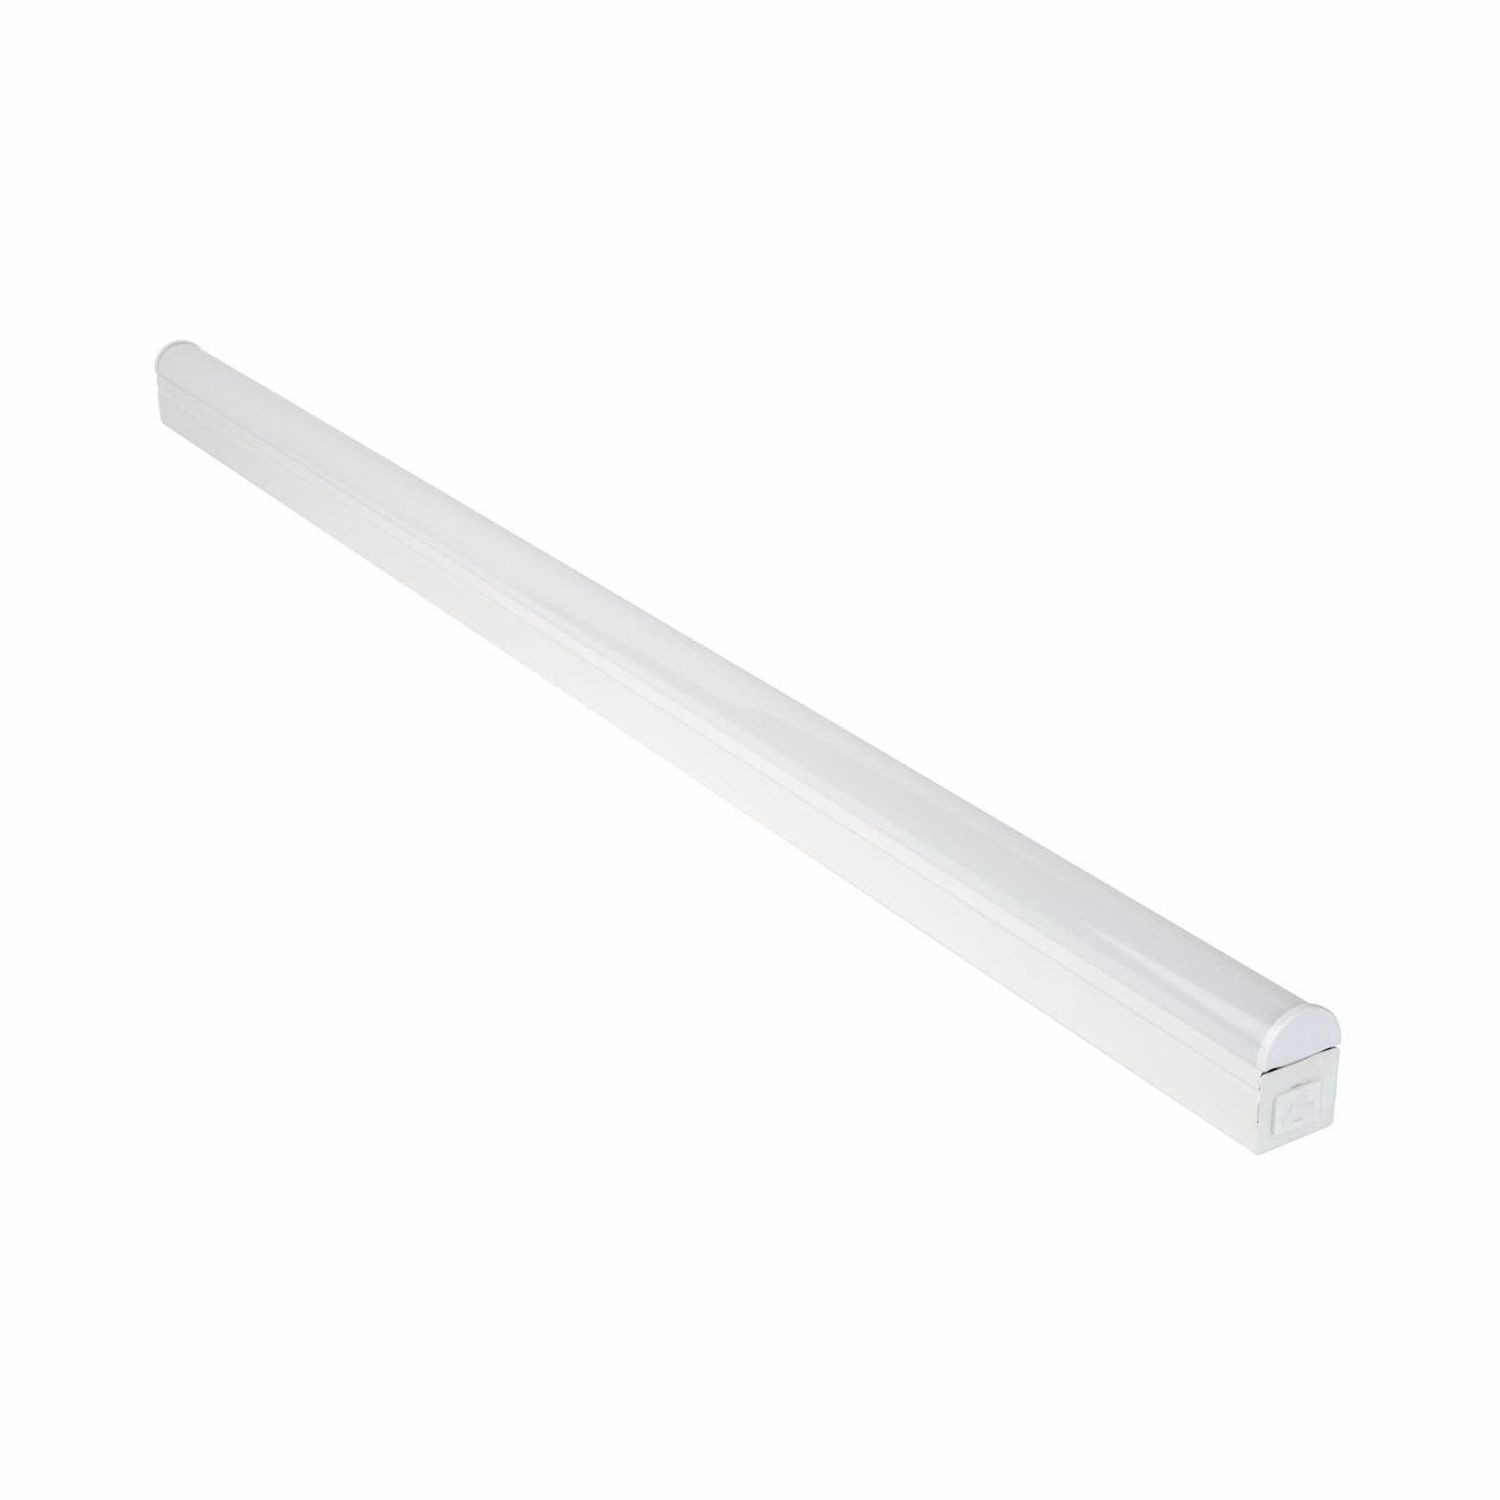 Eti 54263143 linkable fluorescent strip lighting t8 fluorescent eti 54263143 linkable fluorescent strip lighting t8 fluorescent lamp 120 vac aloadofball Gallery